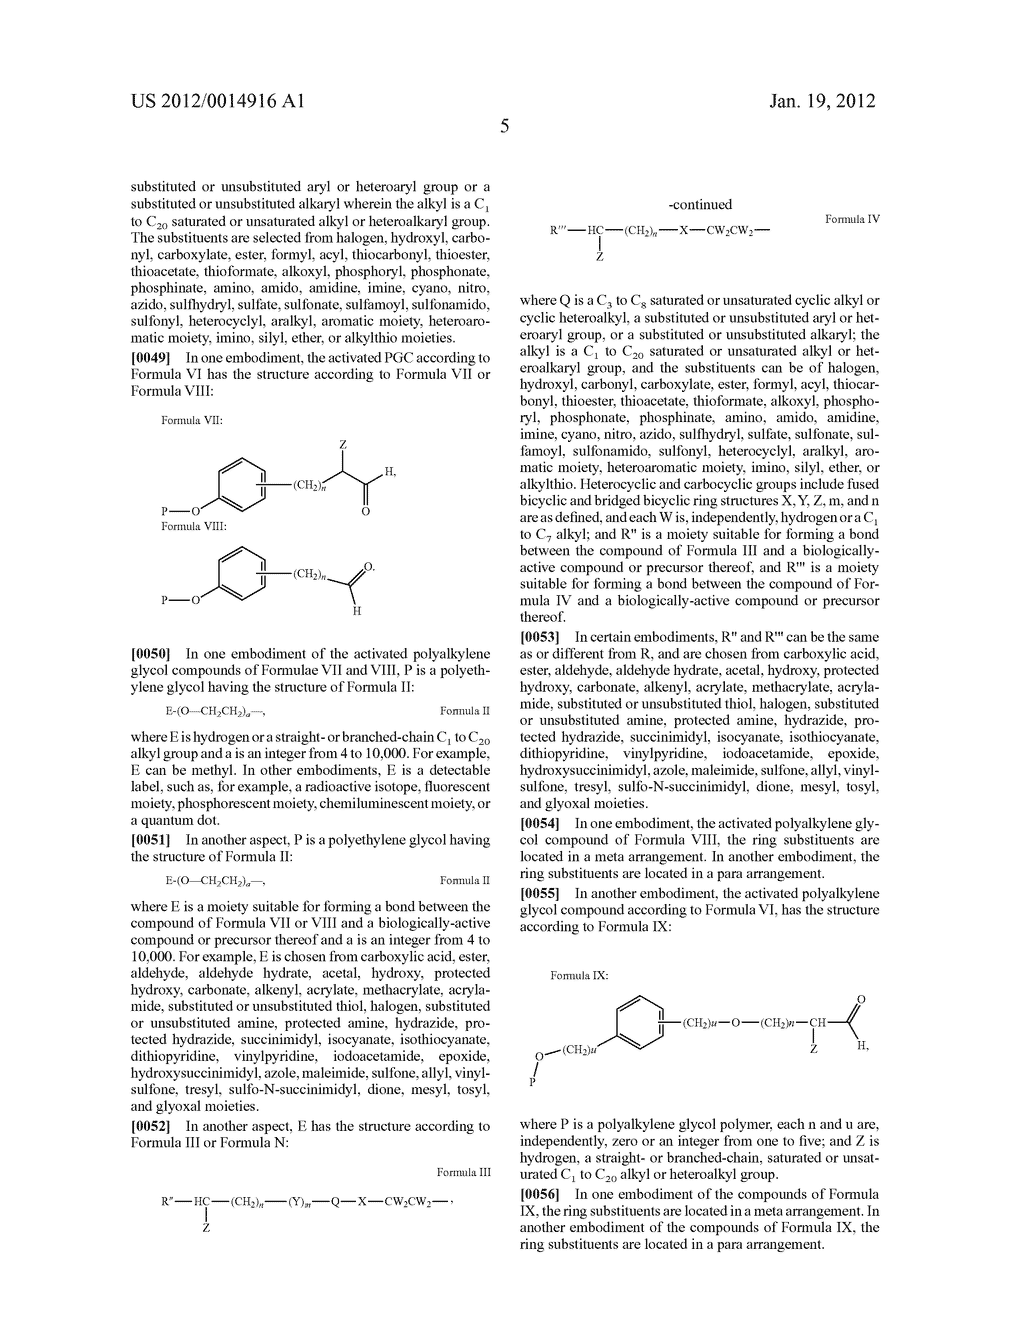 POLYALKYLENE POLYMER COMPOUNDS AND USES THEREOF - diagram, schematic, and image 17